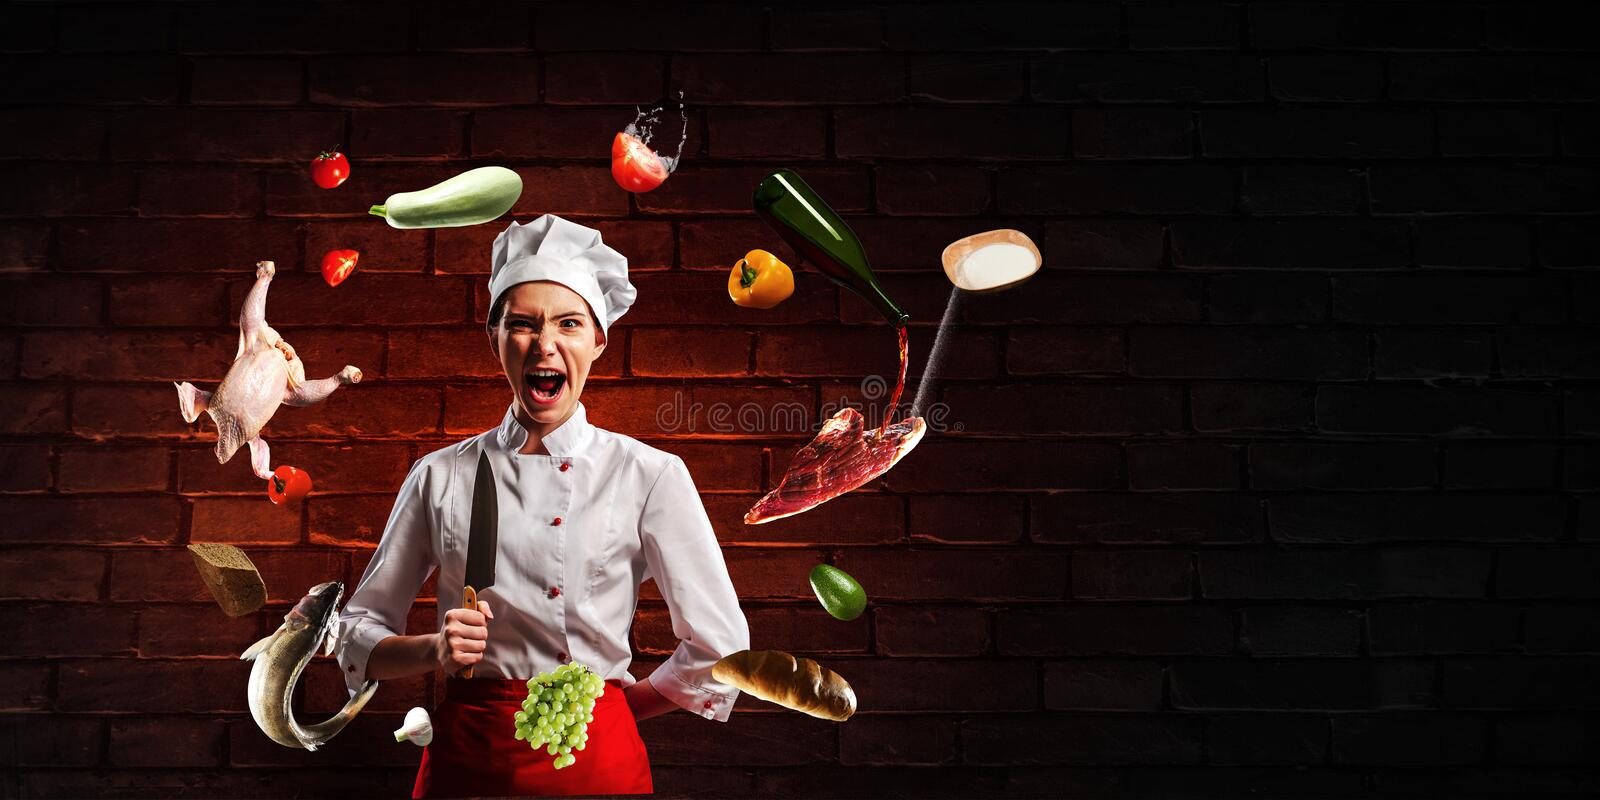 He is crazy about cooking. Mixed media stock photography